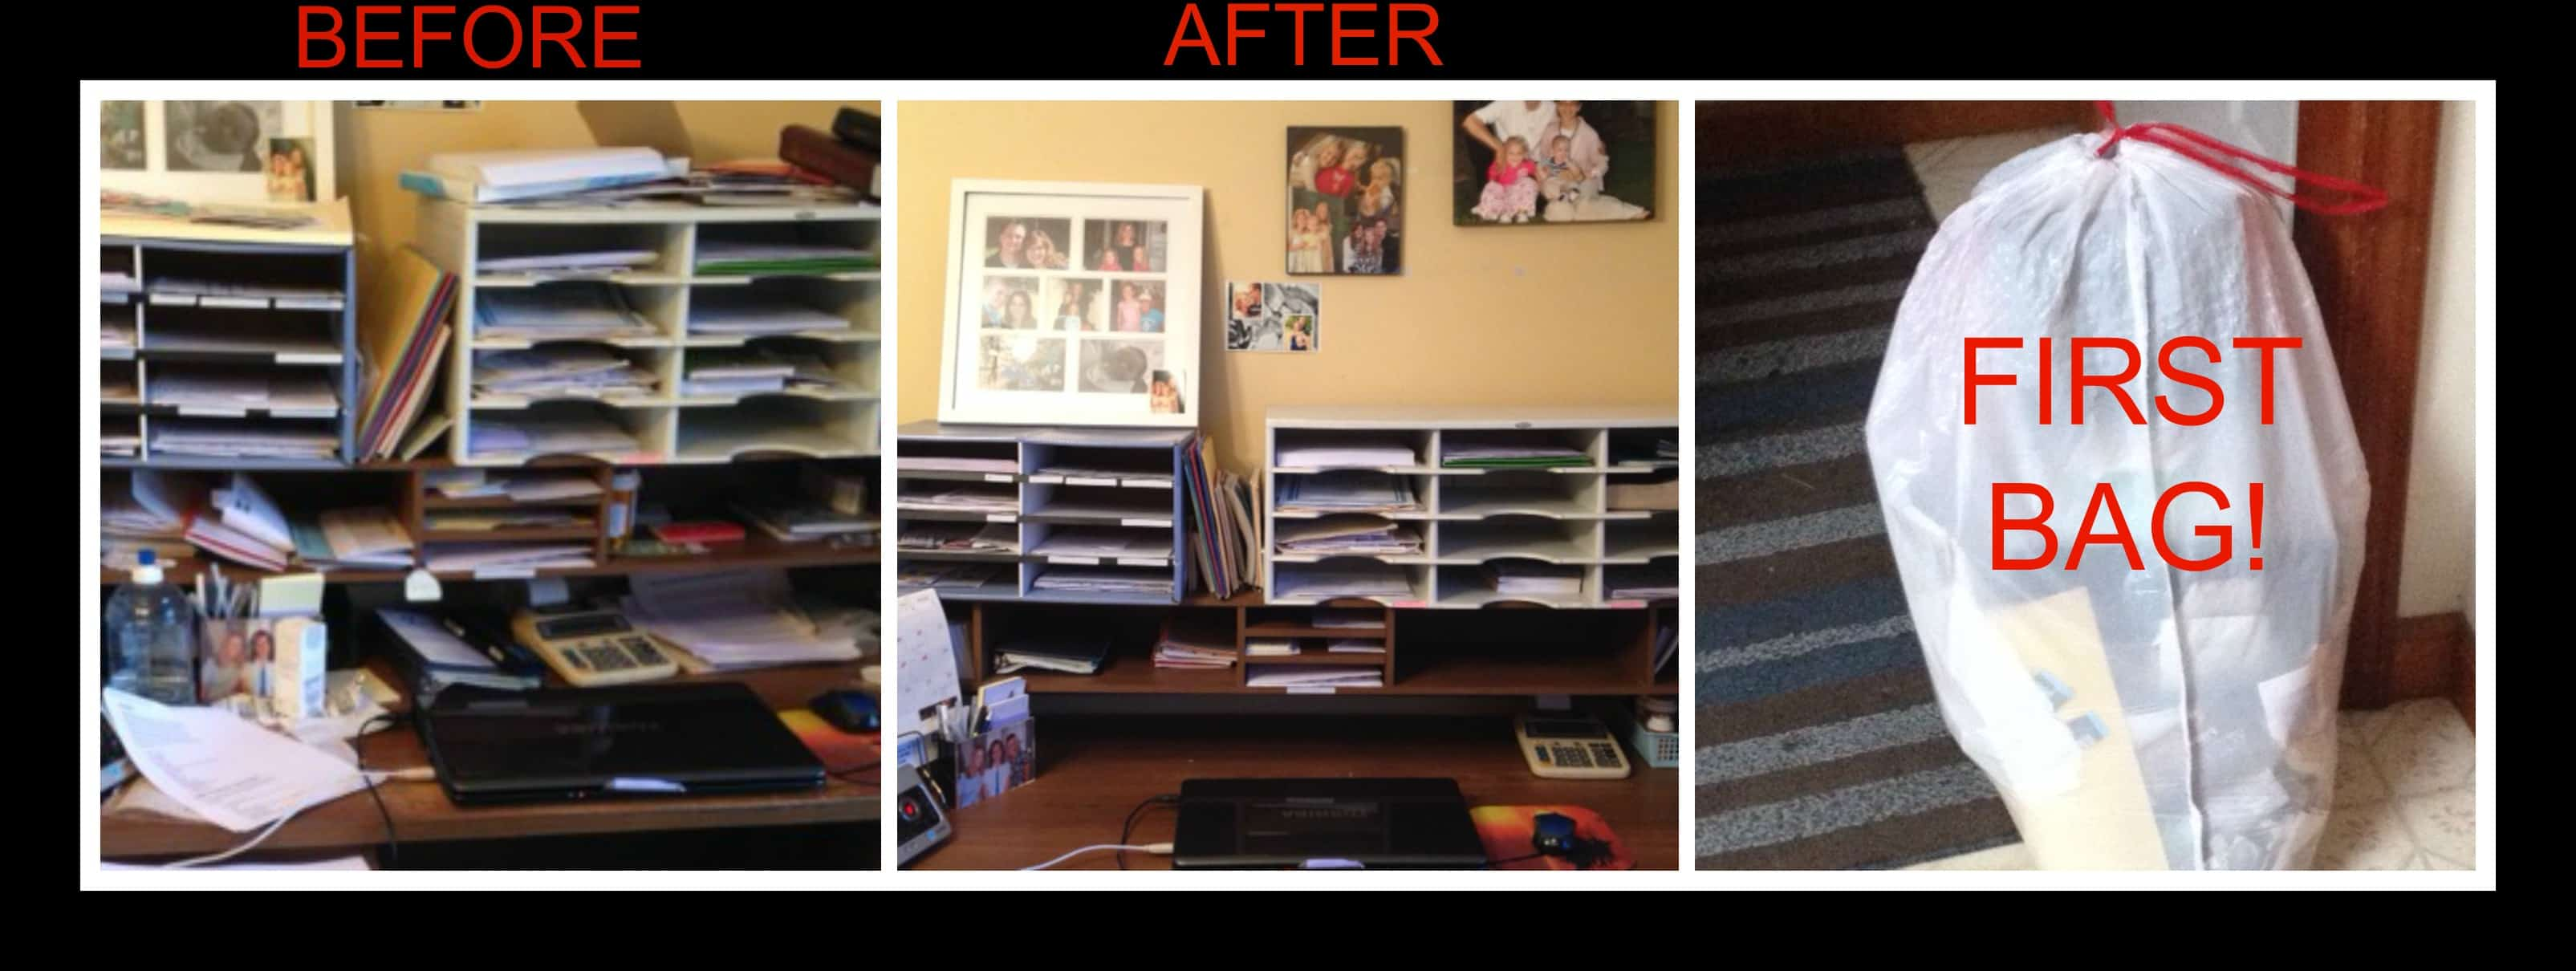 7 tips to help declutter your home the character corner - Declutter before and after ...